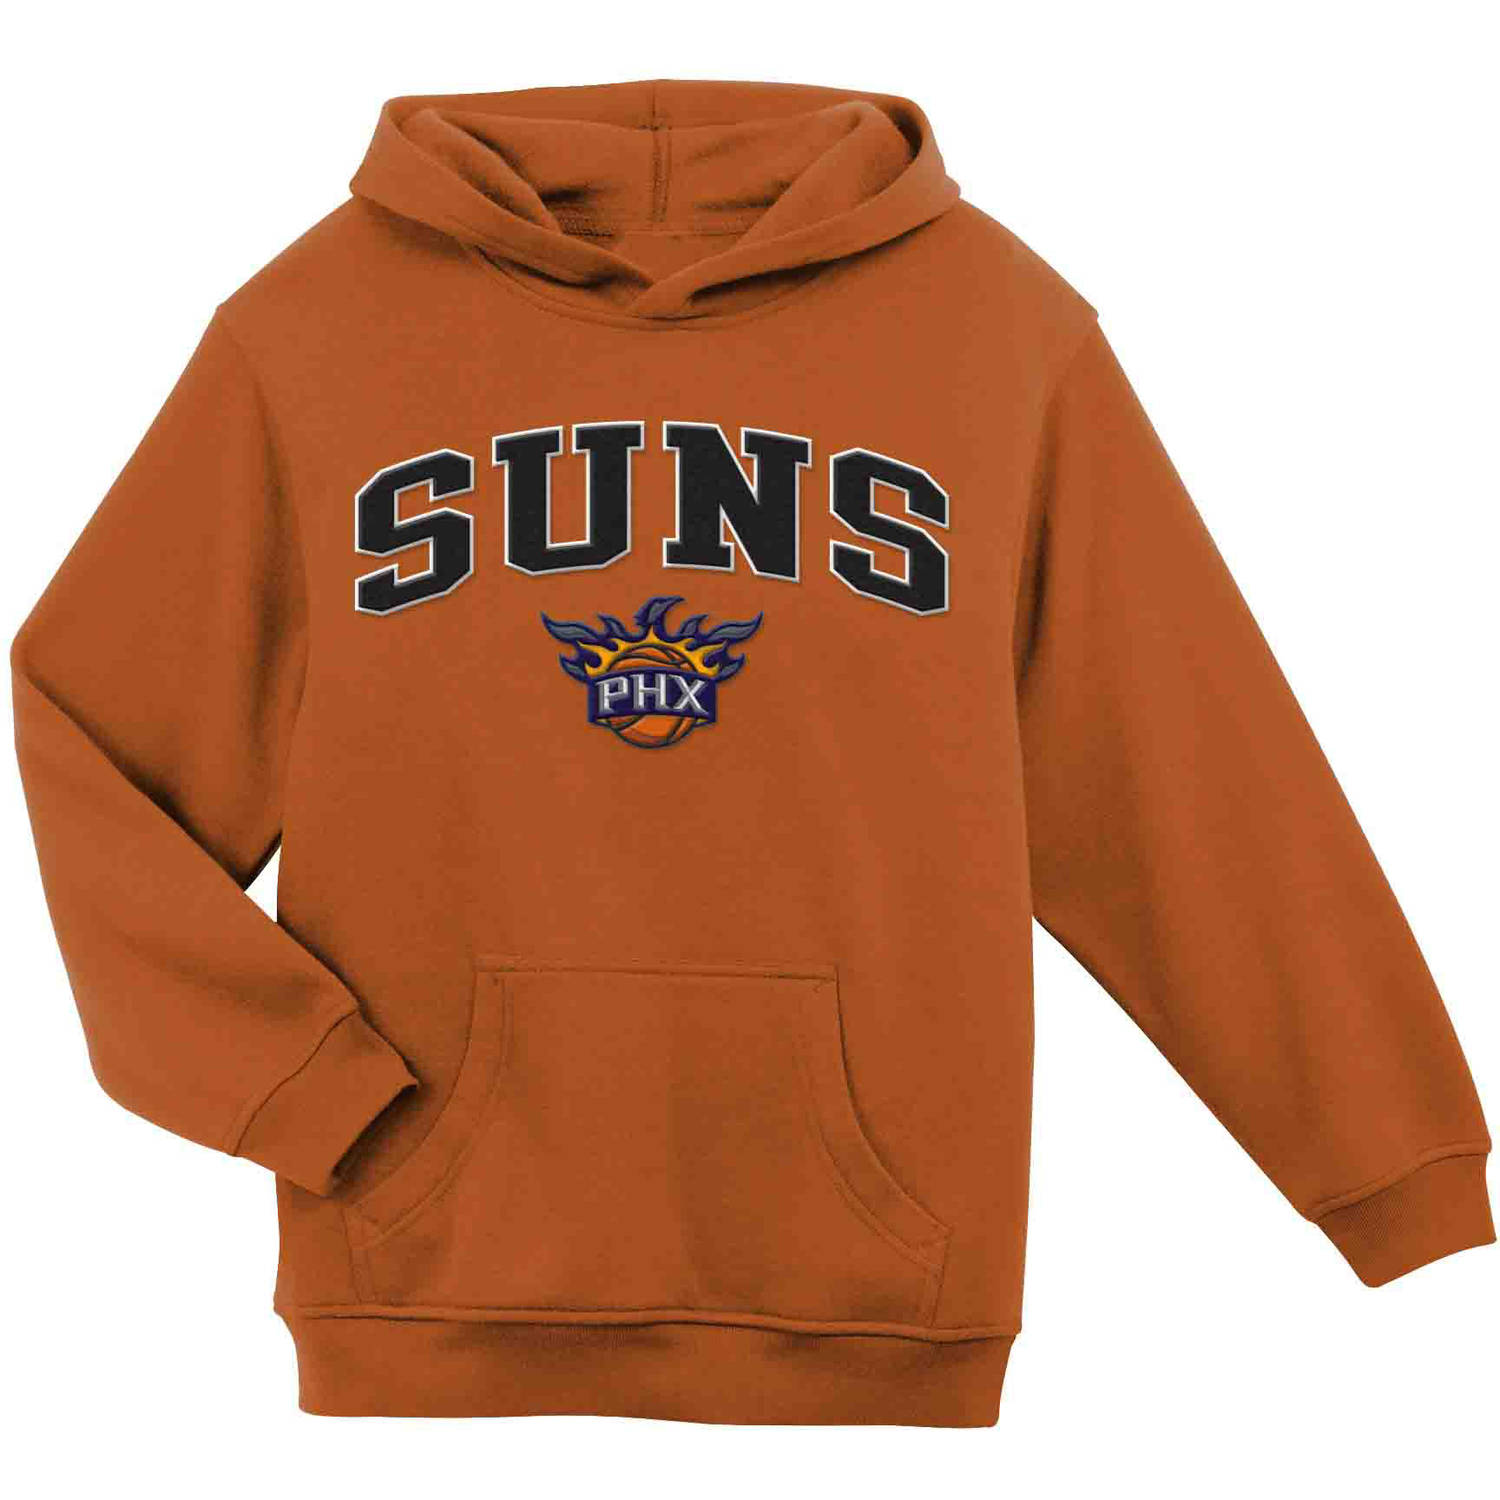 NBA Phoenix Suns Youth Team Hooded Fleece